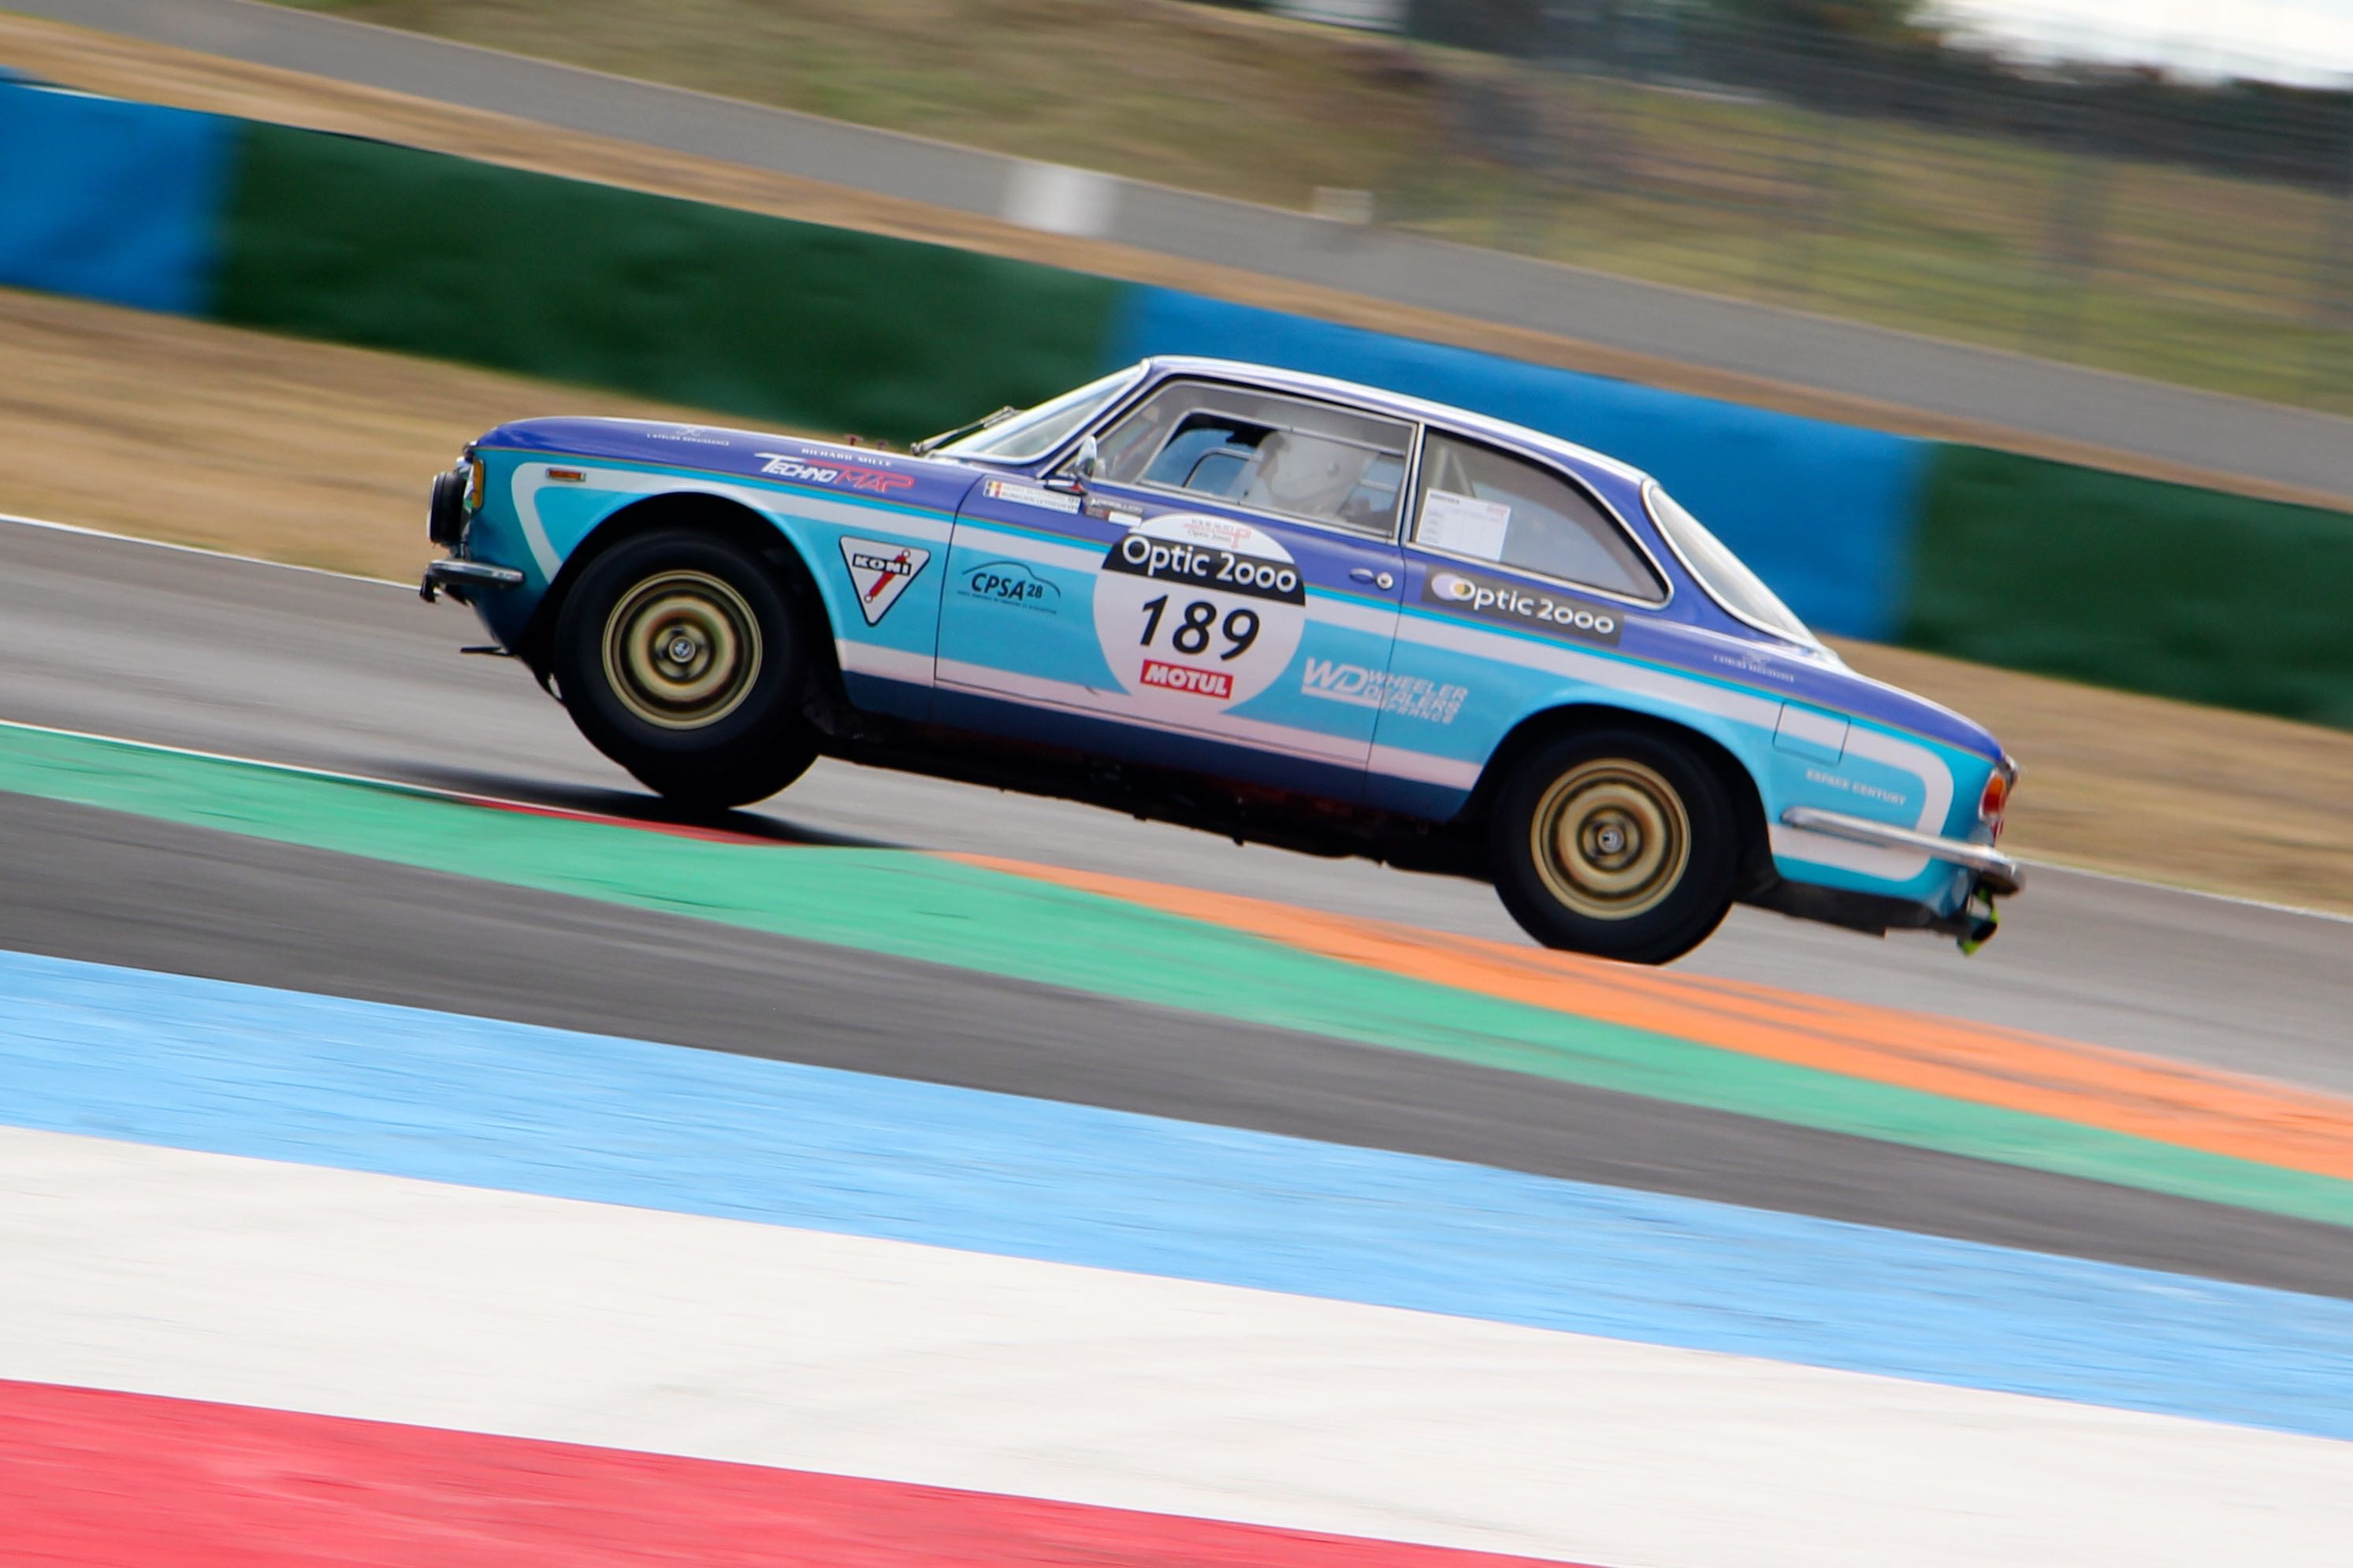 Alfa Romeo Giulia Sprint GT Veloce - circuit de Nevers Magny-Cours - Tour Auto 2020 - photo Ludo Ferrari